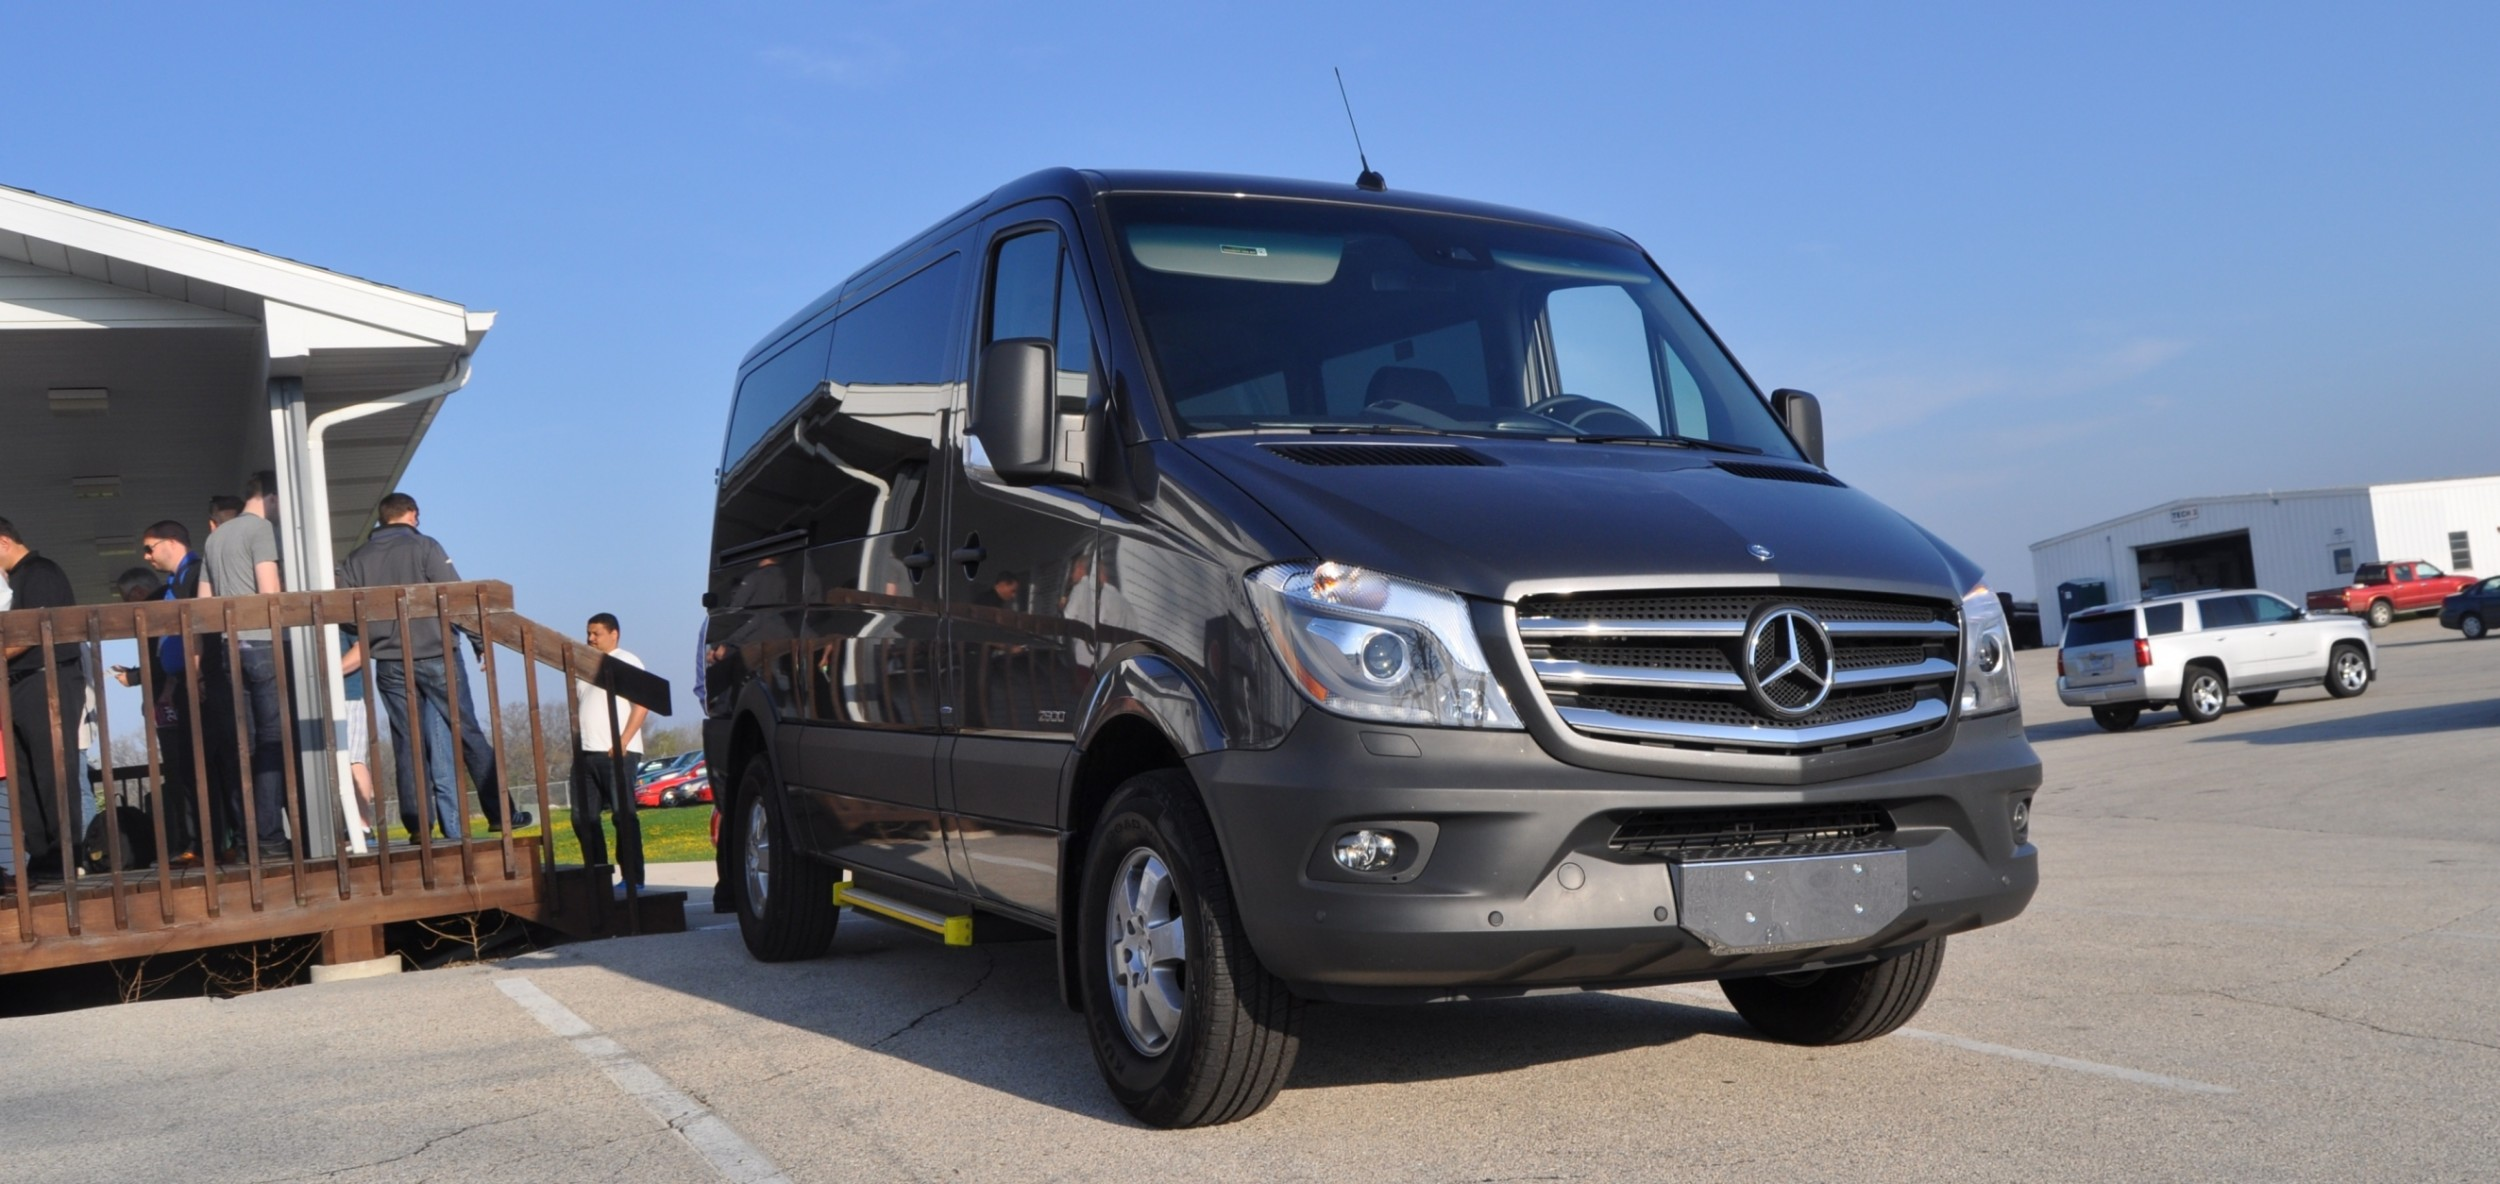 New 2014 mercedes benz sprinter vans in real life 2015 4x4 for Mercedes benz sprinter 2014